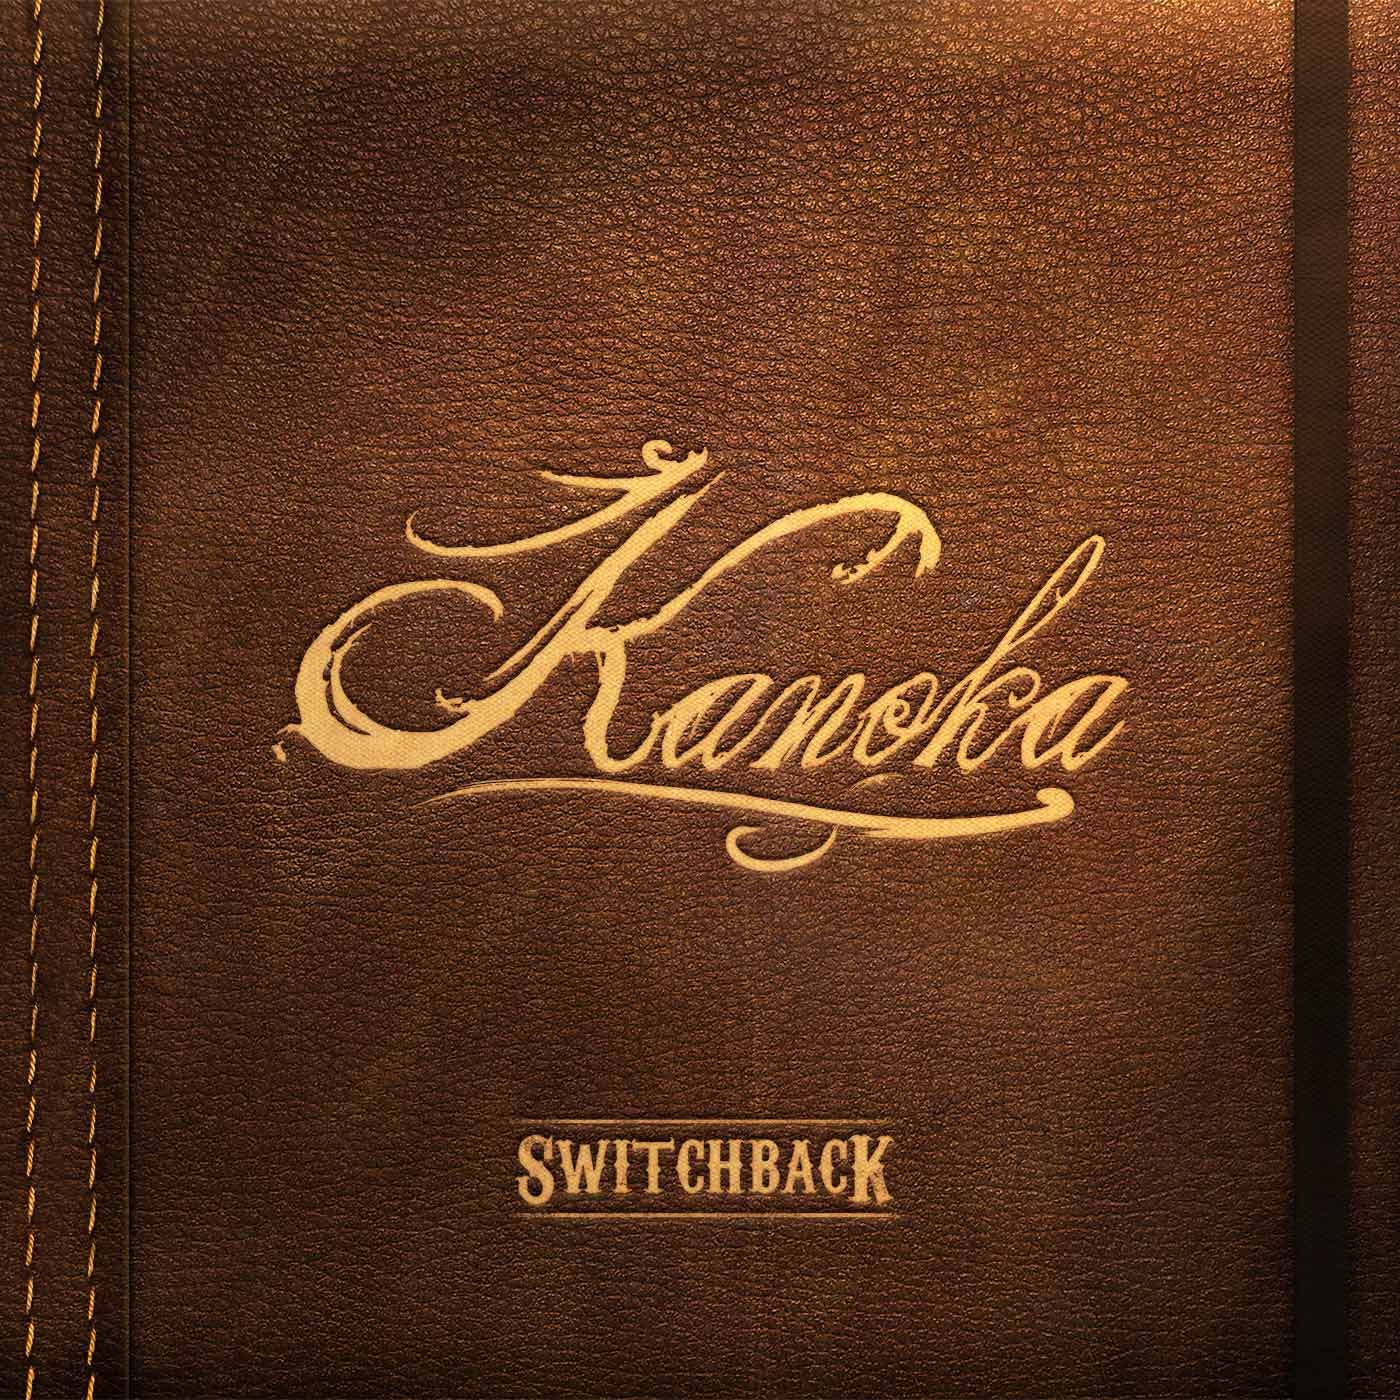 kanoka-cover-hi-res